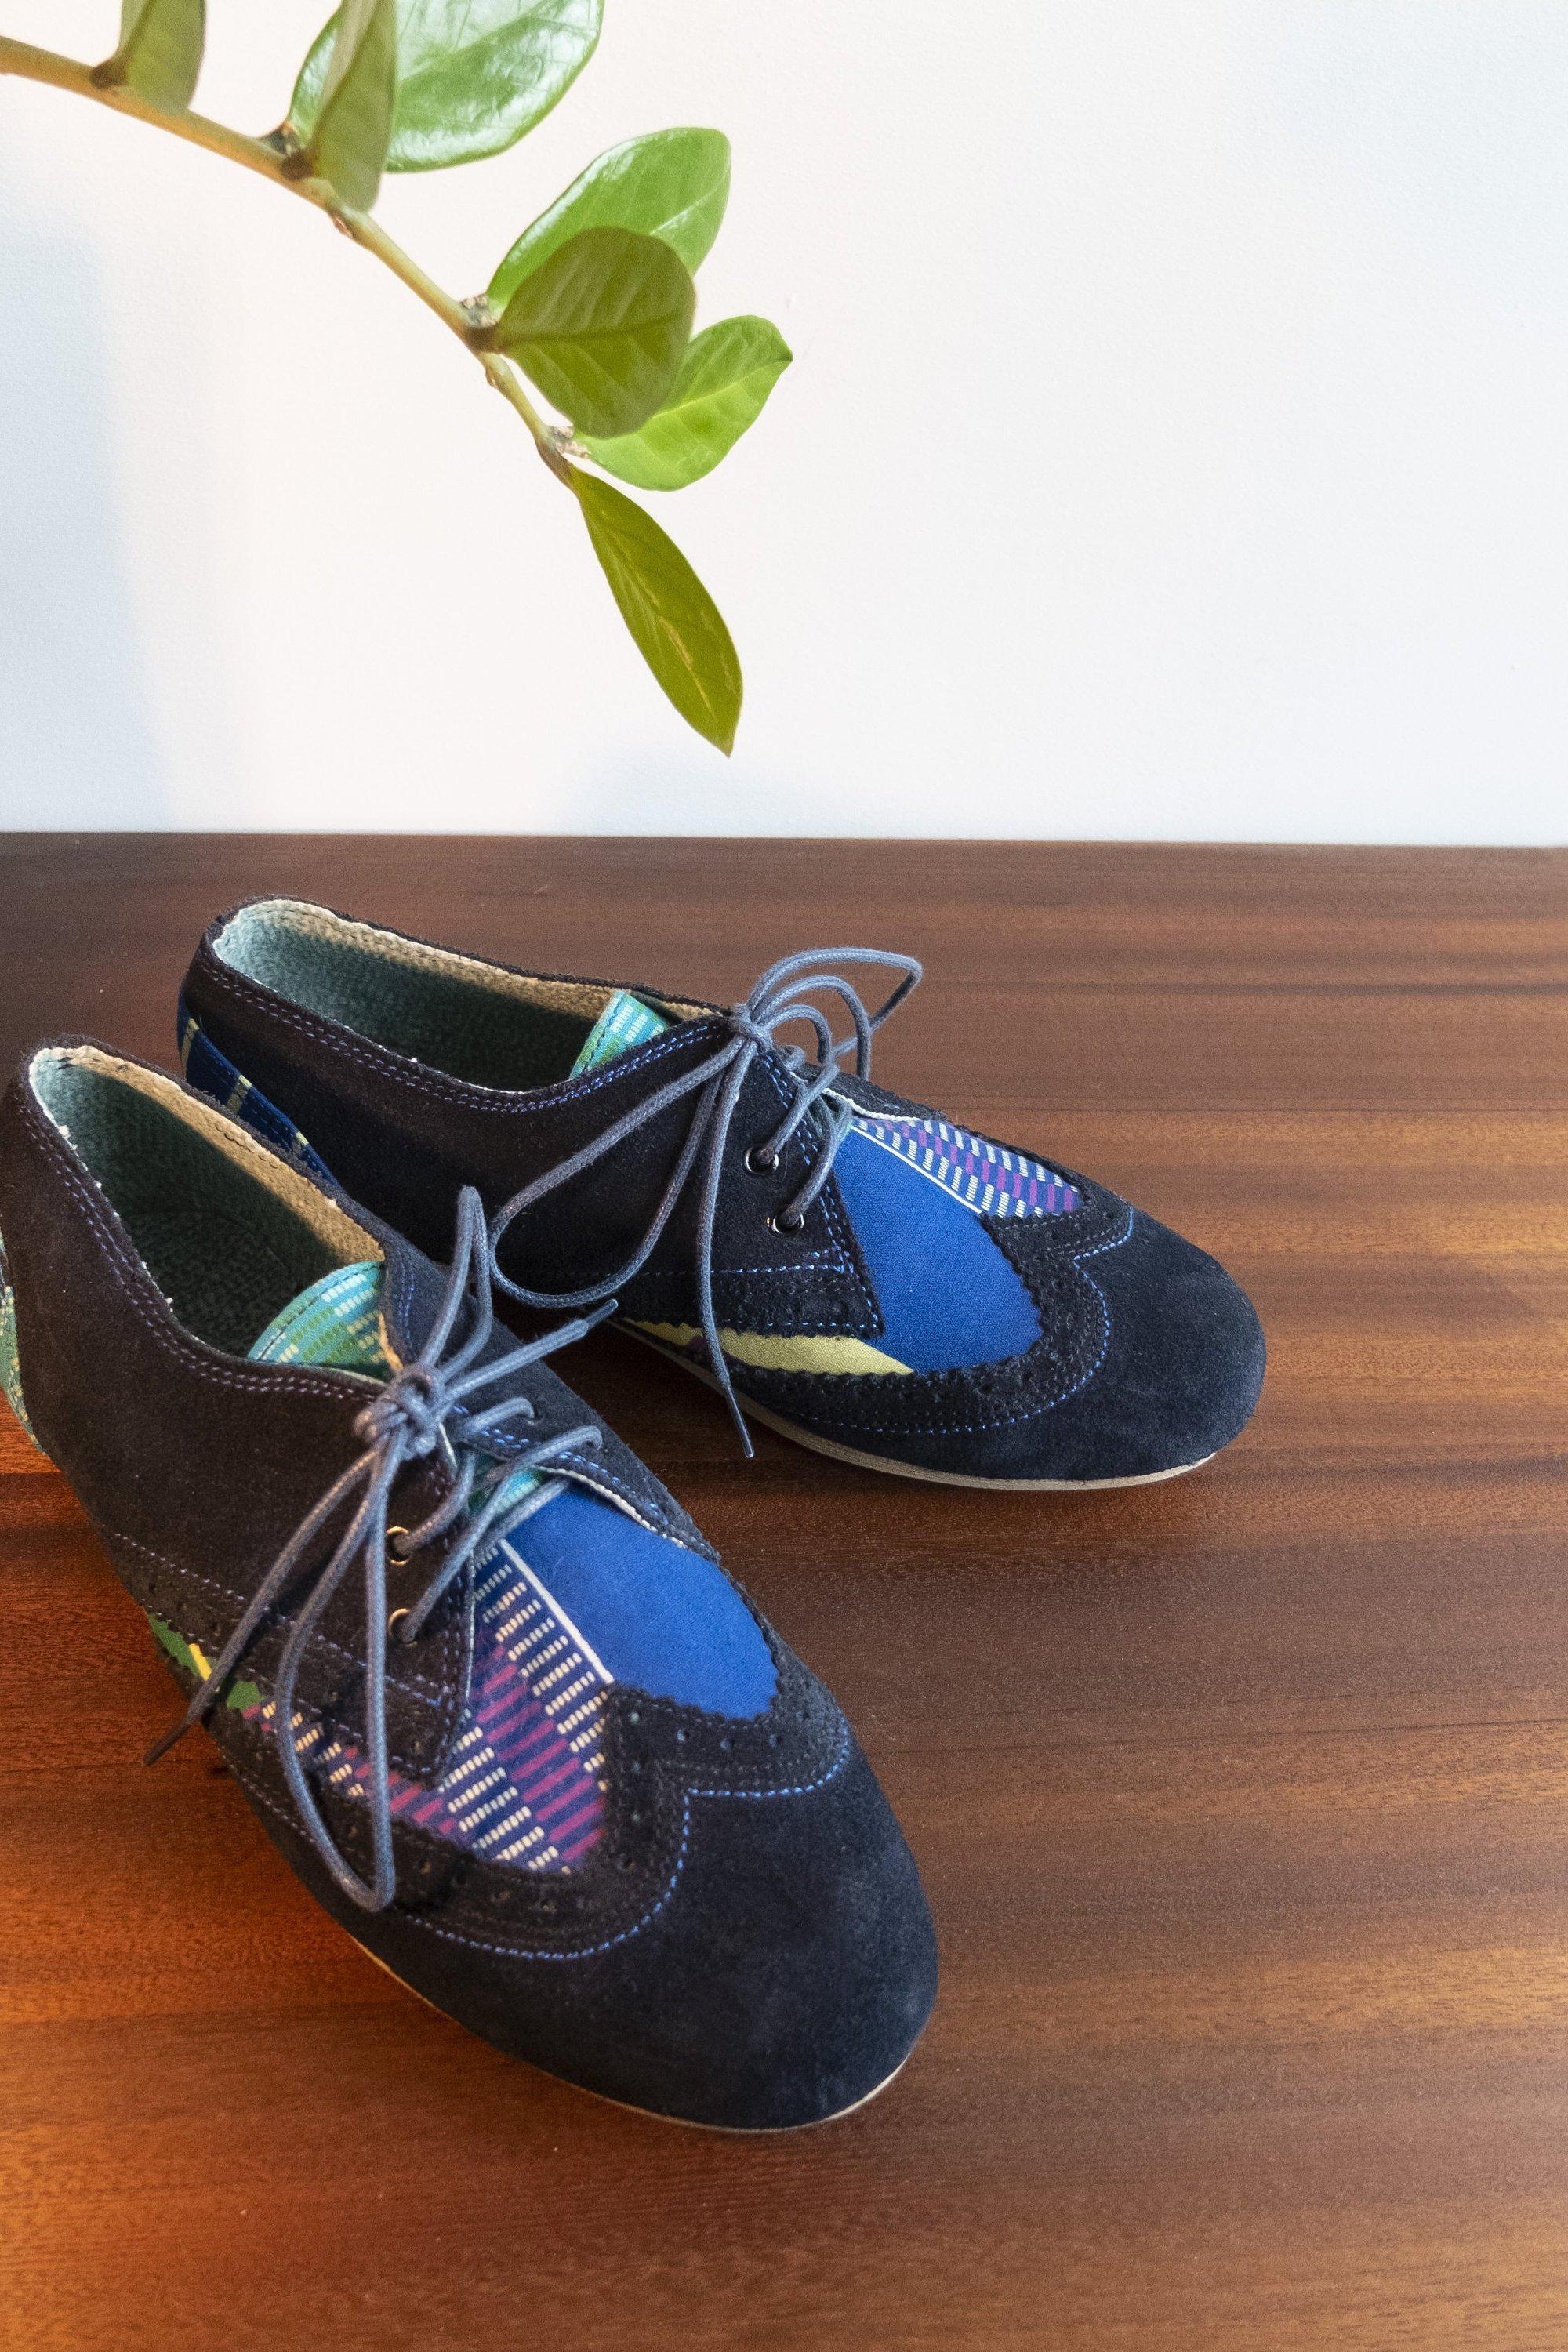 Coloulful Womens Oxford Shoes / Blue Suede Shoes / African Print Shoes / Handmade Womens Brogues / Ankara shoes / UK size 4